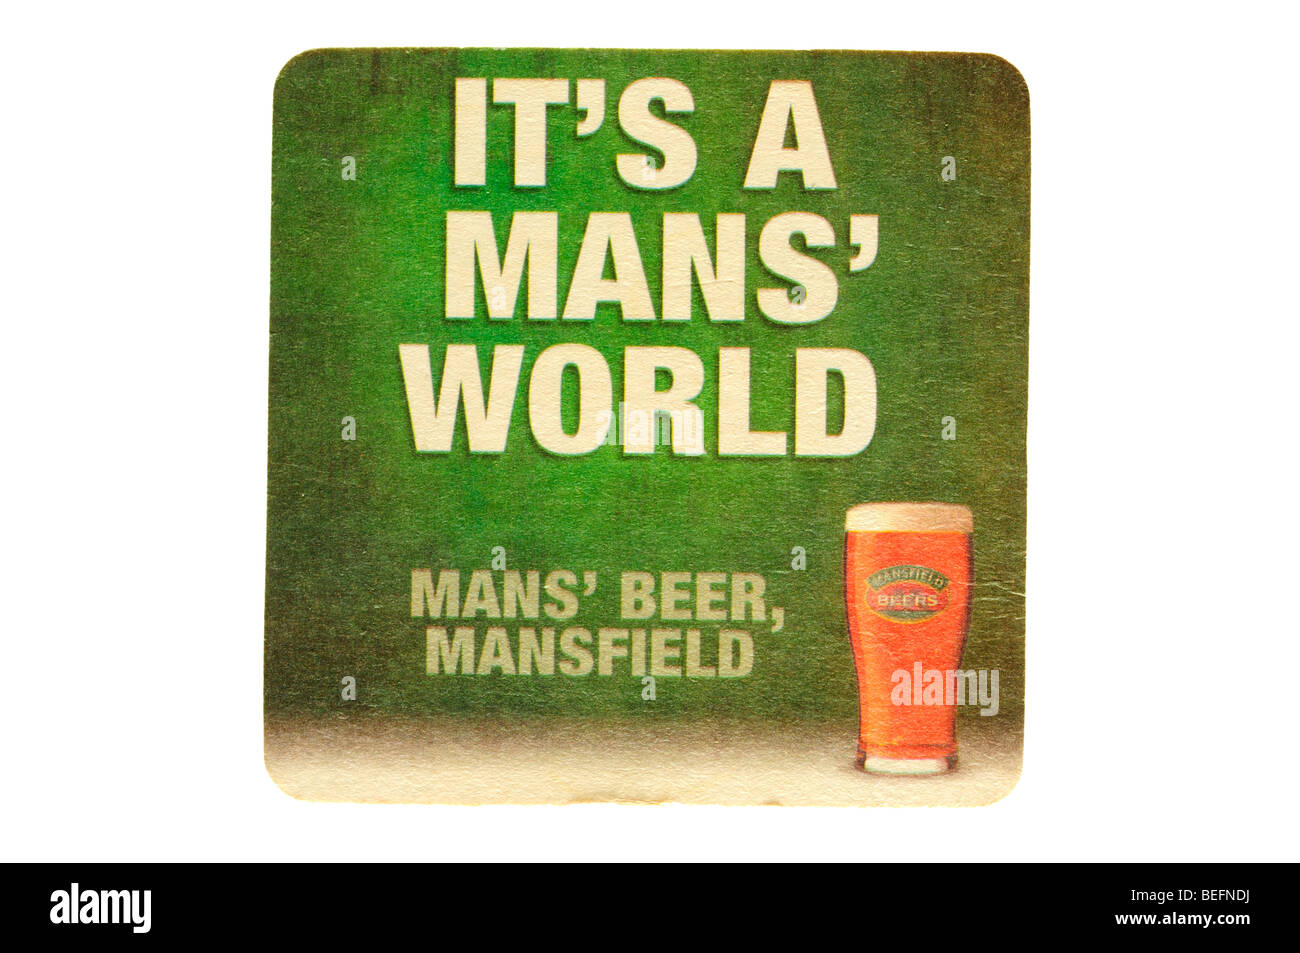 its a mans world mans beer mansfield - Stock Image